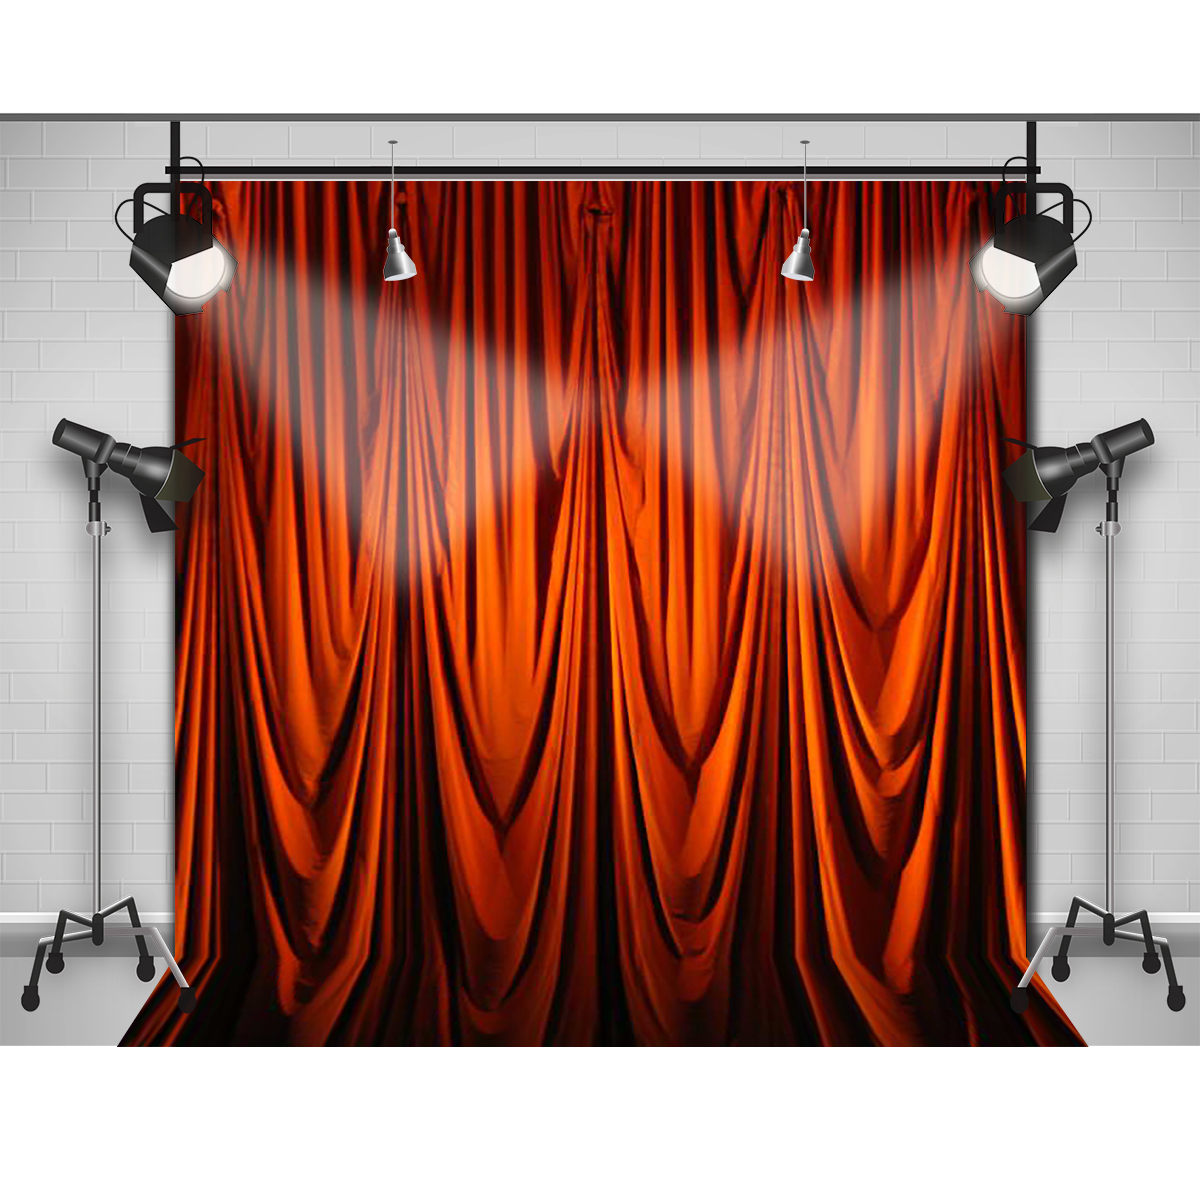 Bl blue stage curtains background - Aliexpress Com Buy Allenjoy Photographic Background Orange Silk Curtain Folds Photo Backdrops For Sale New Design Fabric Vinyl Fondos Fotografia From